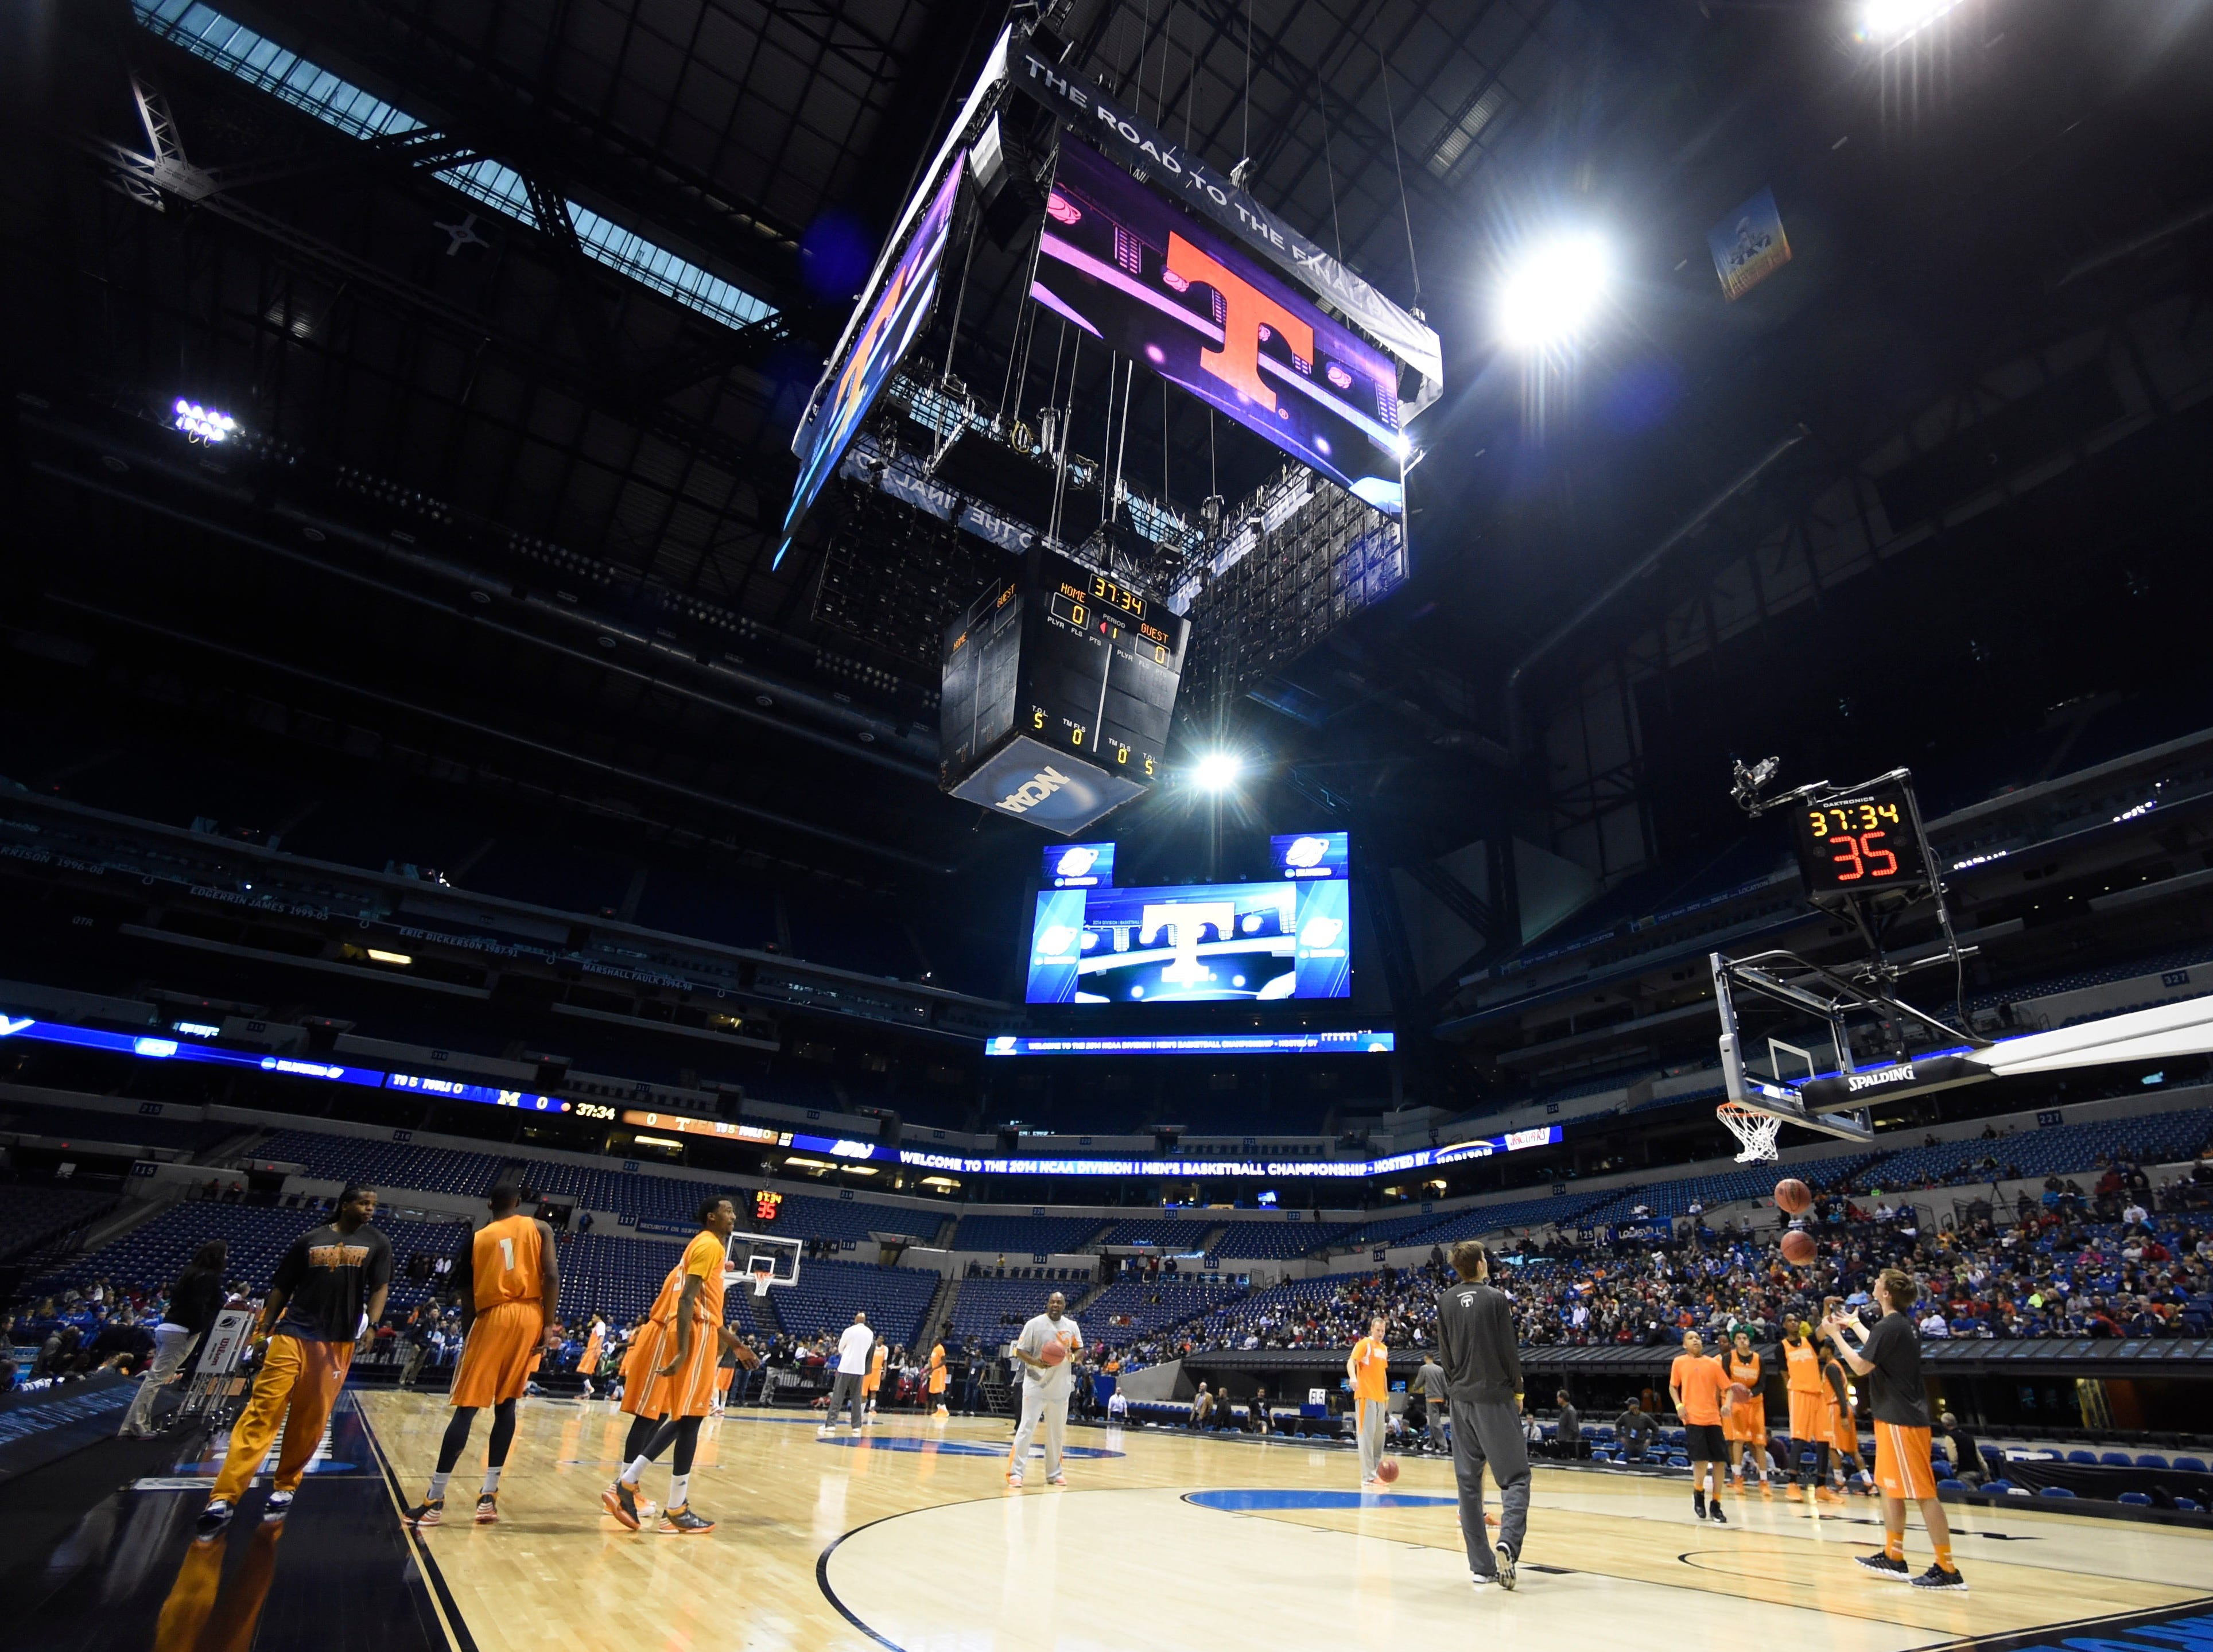 Tennessee's men's basketball team practices before their NCAA Sweet Sixteen game against Michigan at Lucas Oil Stadium in Indianapolis, Ind. on Thursday, March 27, 2014.